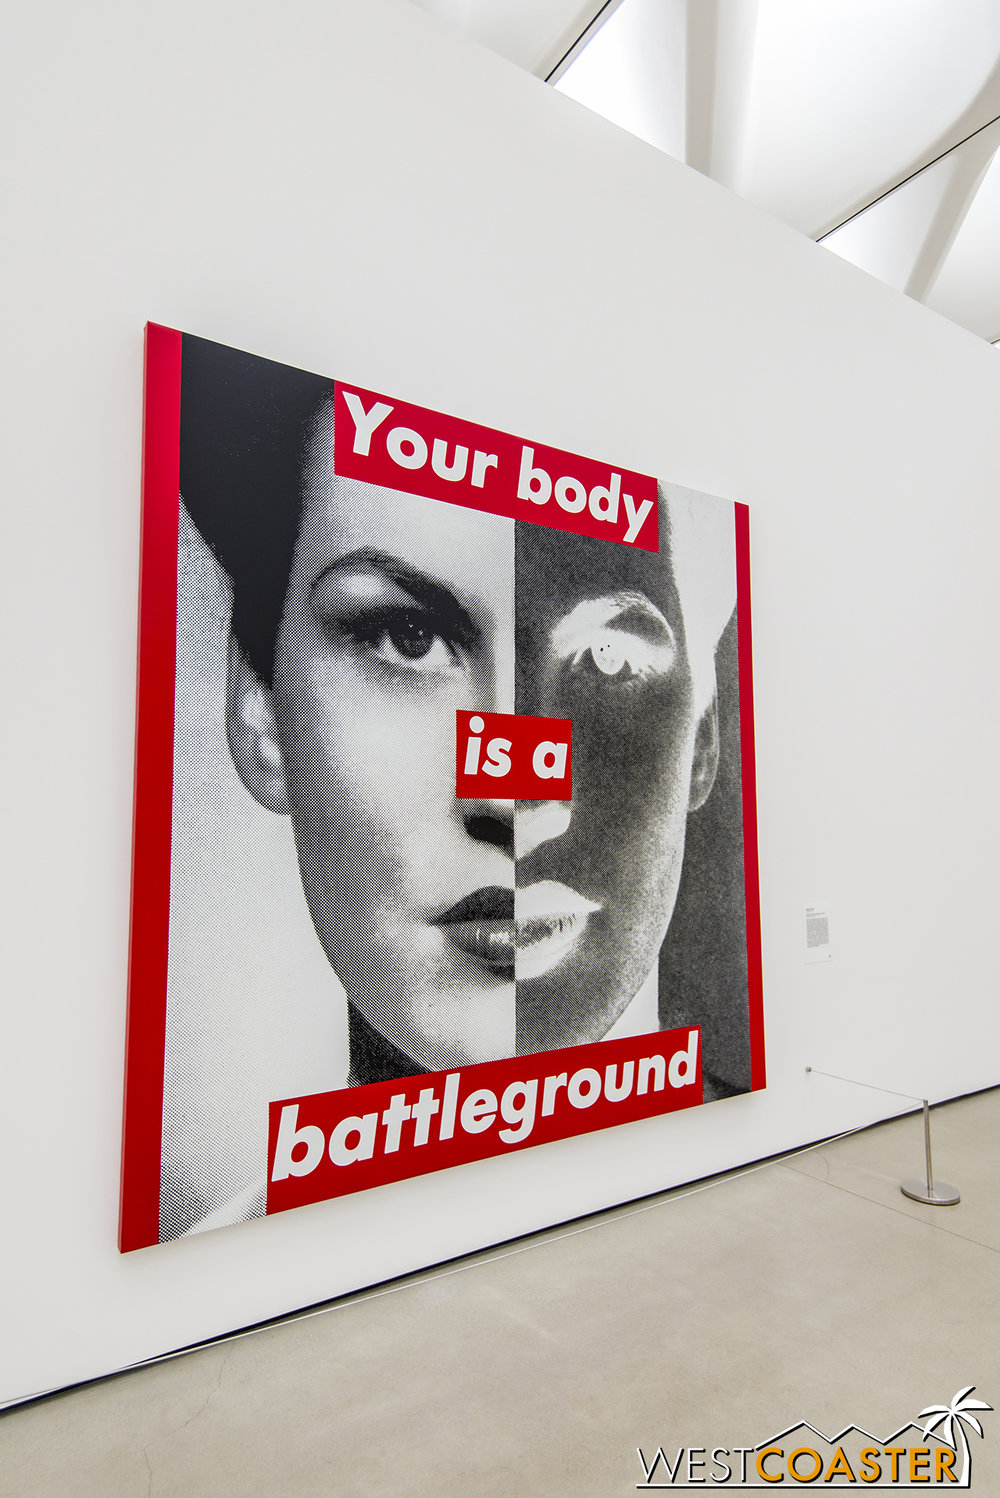 Barbara Kruger's  Untitled (Your body is a battleground) .